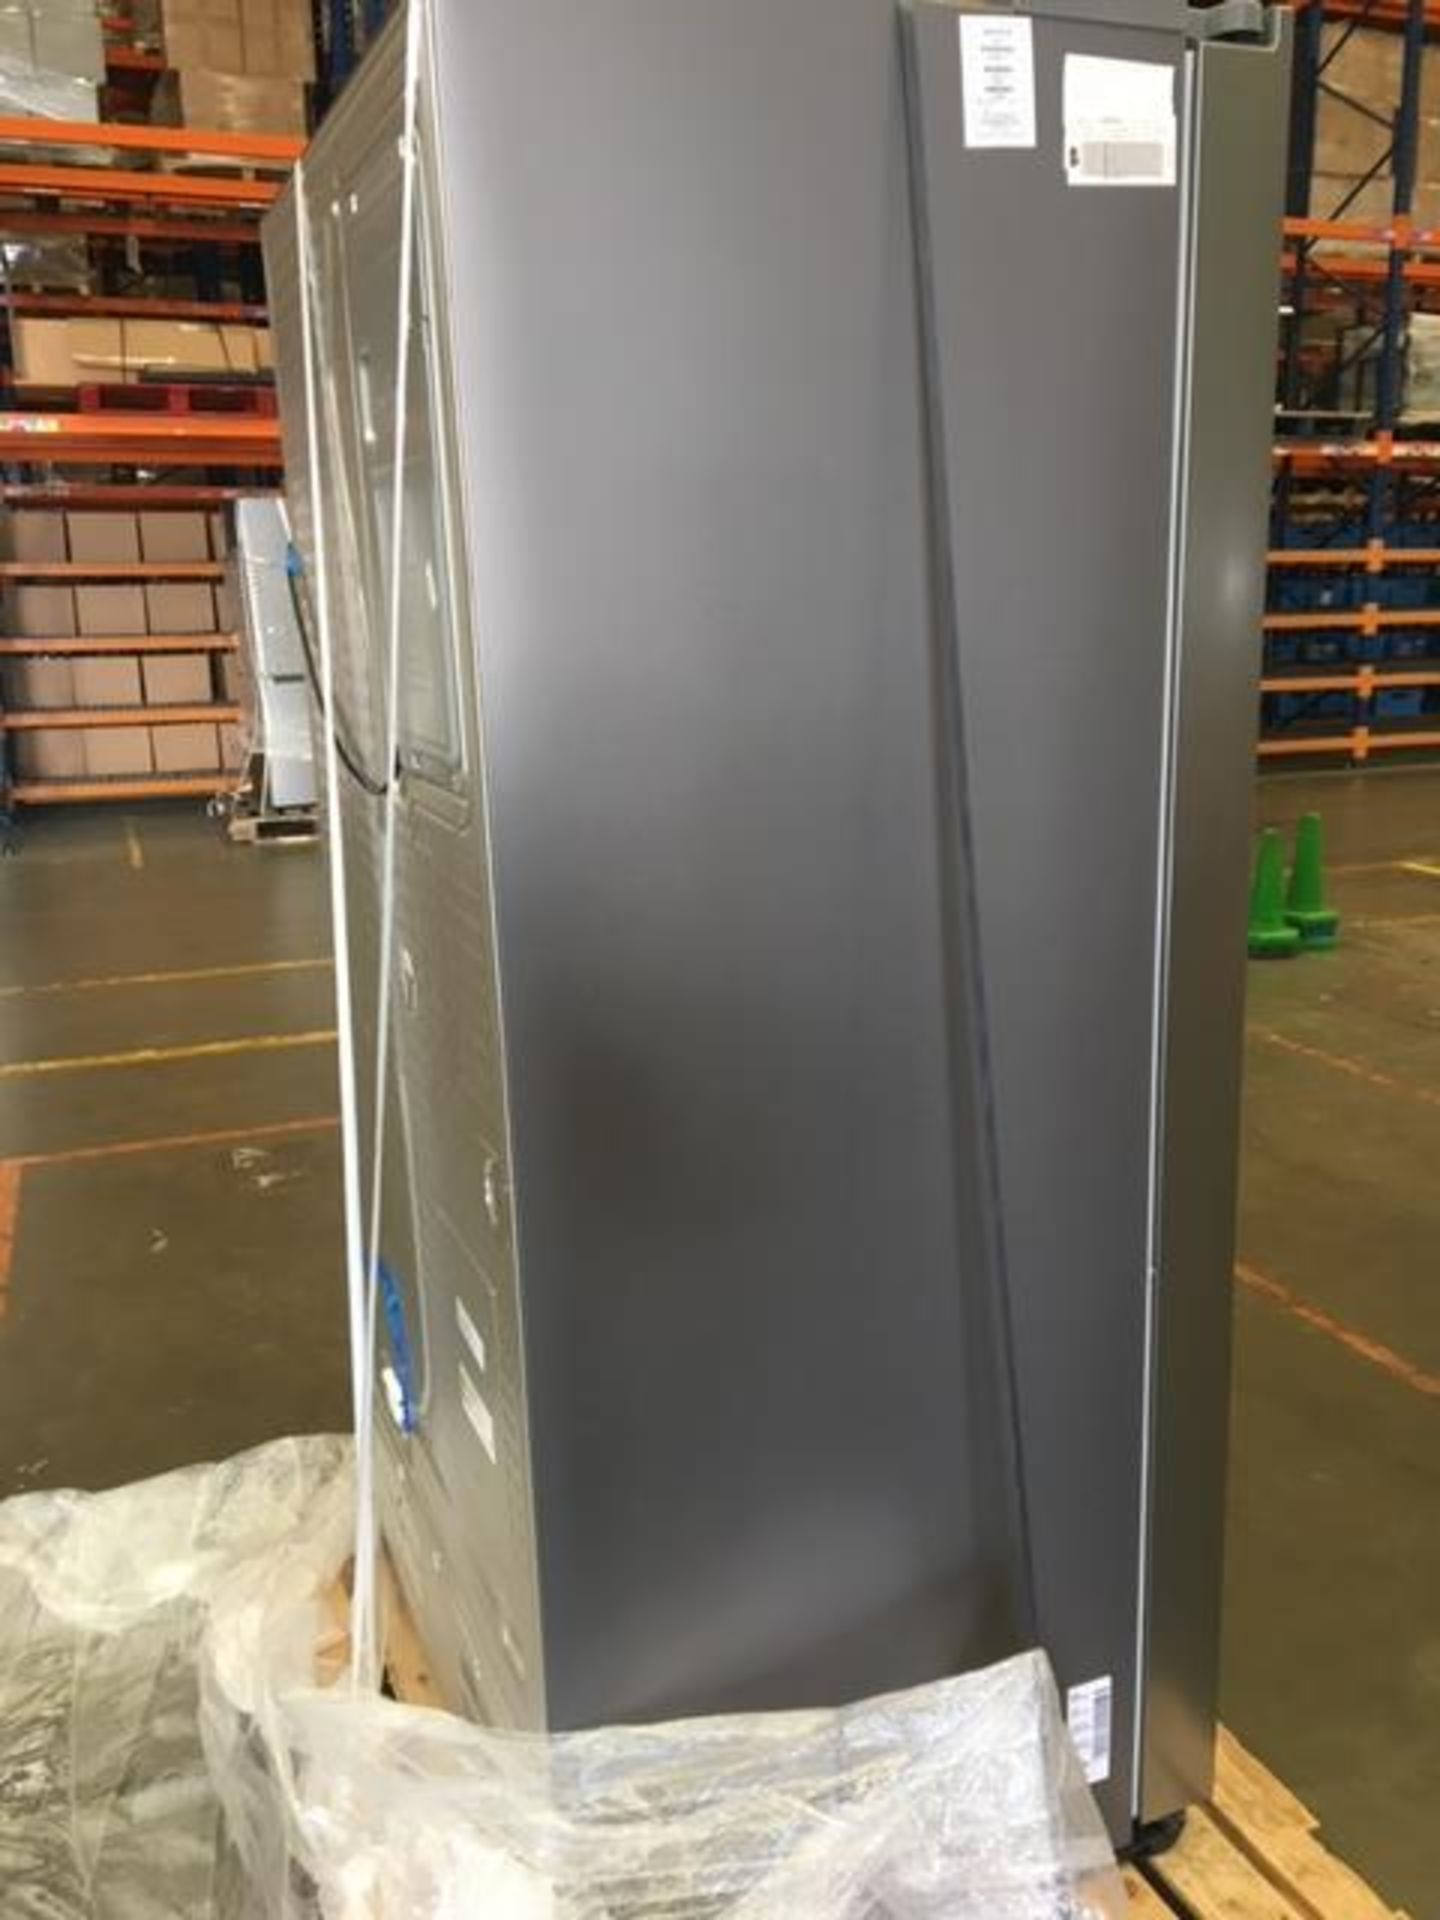 Pallet of 1 Samsung Water & Ice Fridge freezer. Latest selling price £1,769.99* - Image 8 of 10